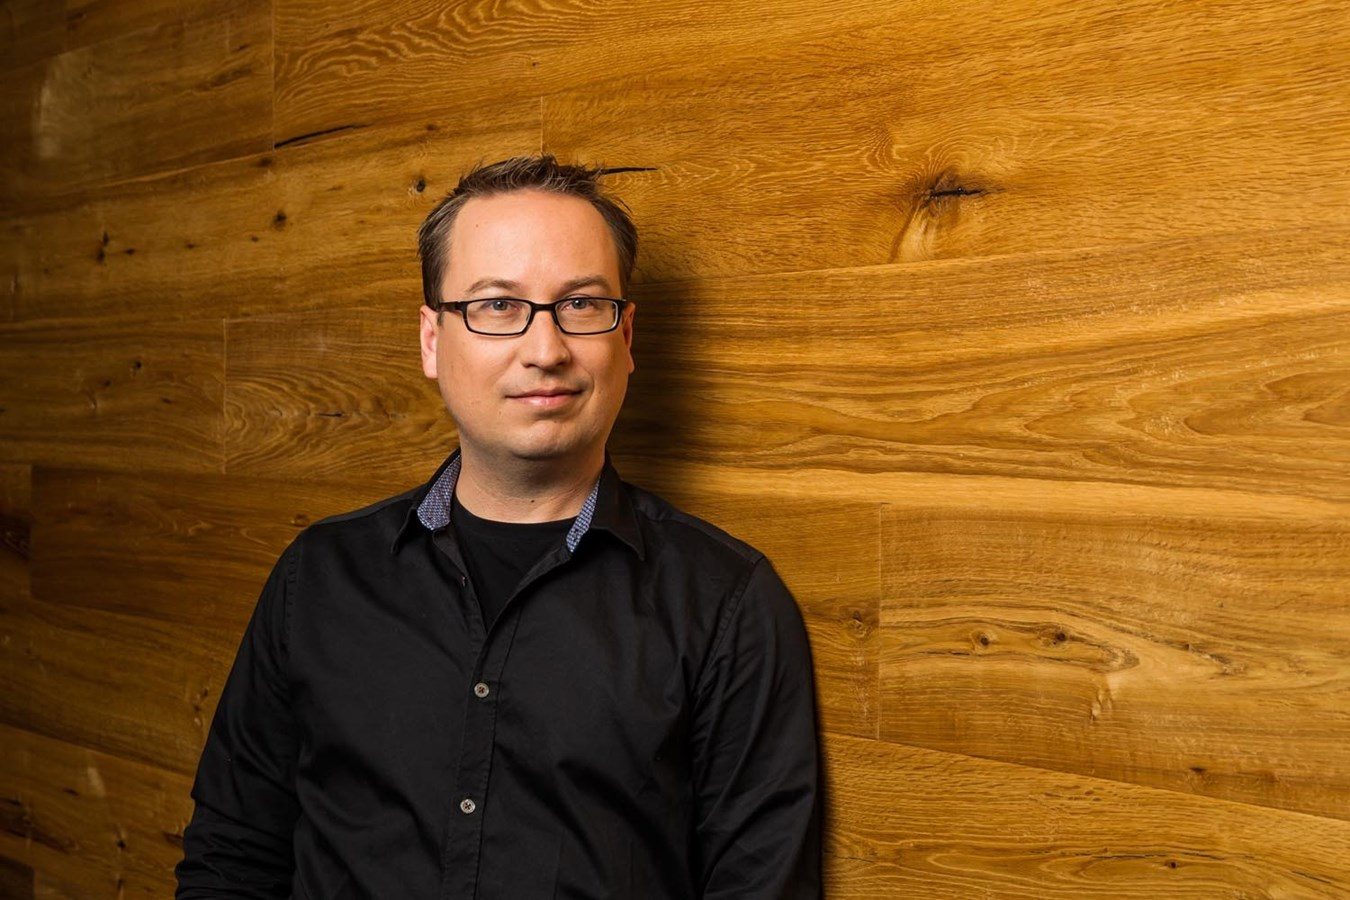 Thomas Stovicek, Head of Volvo Cars' user experience and interaction design operations